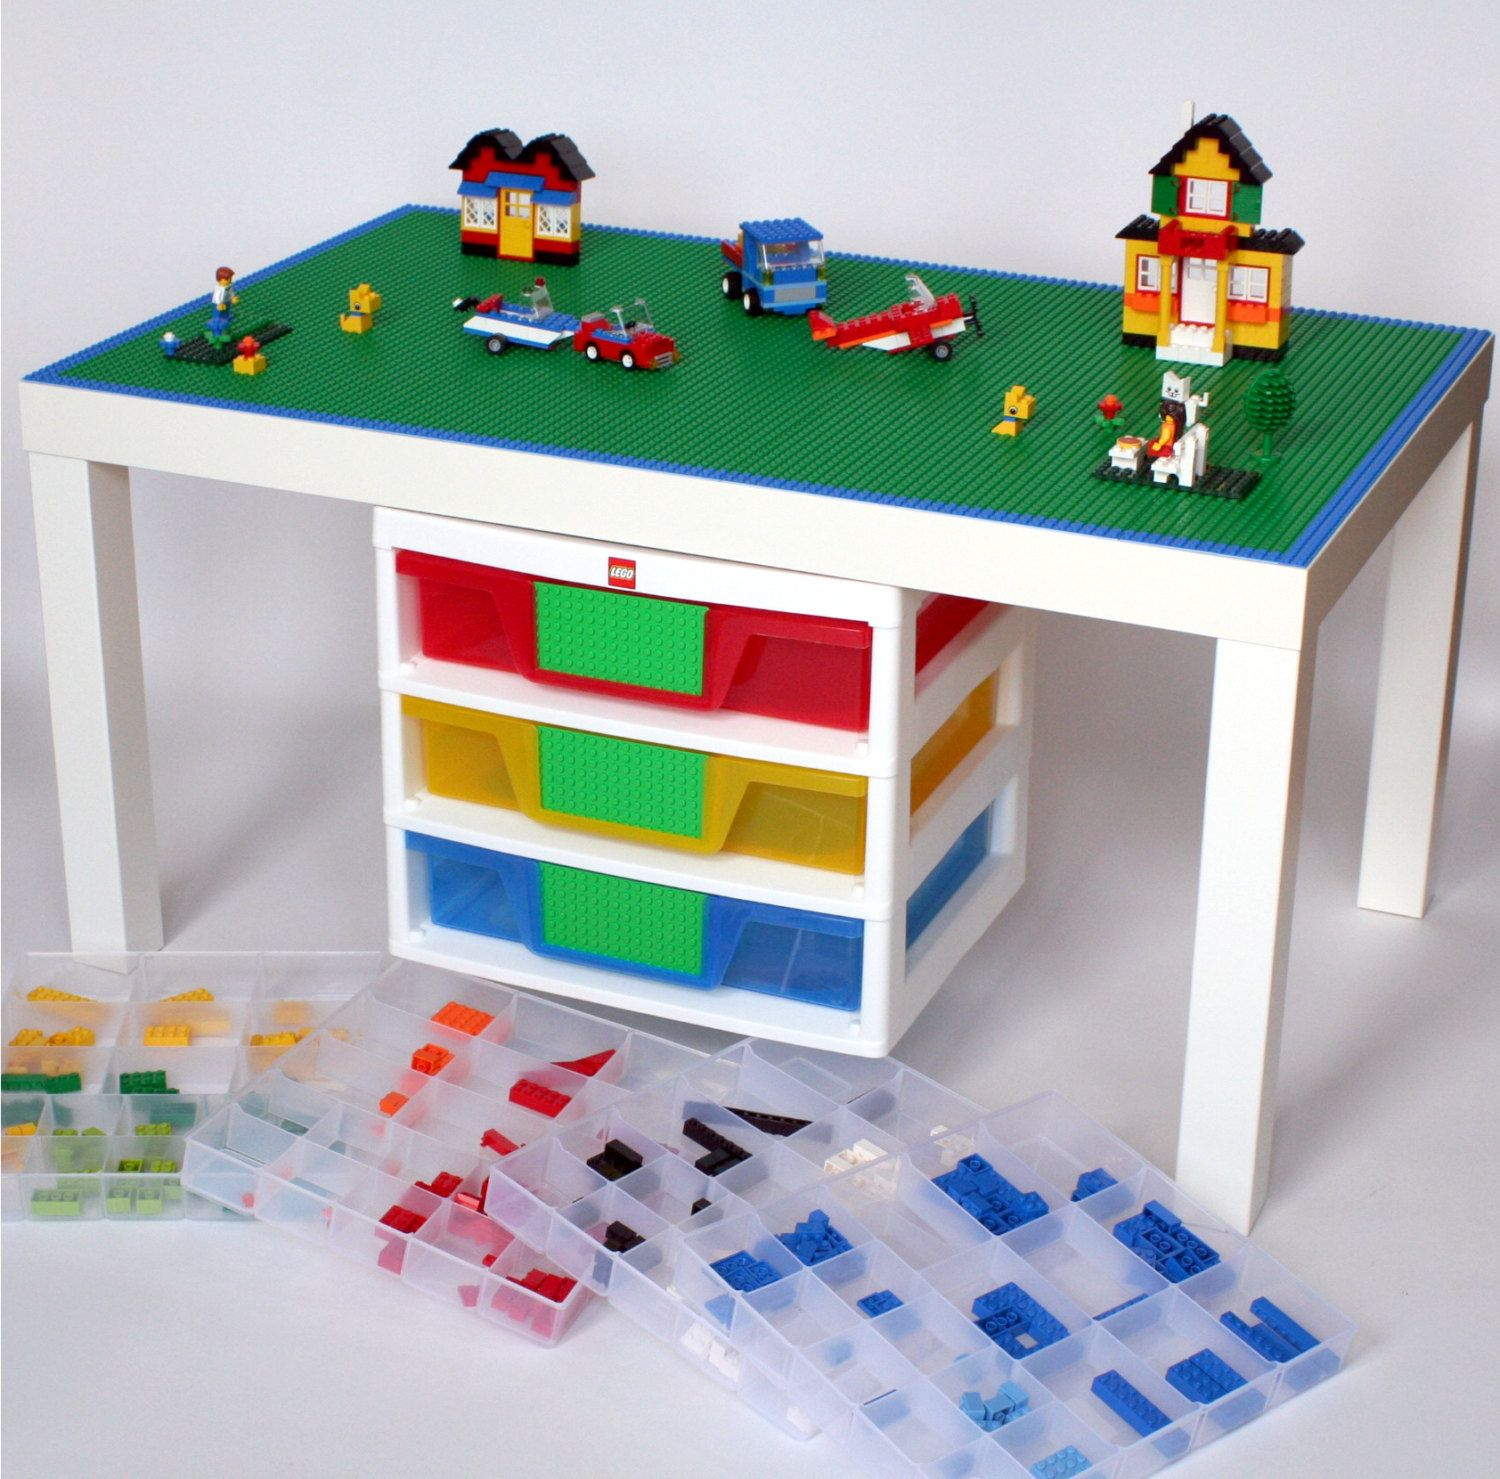 Large Lego Table 22 X 35 Surface With